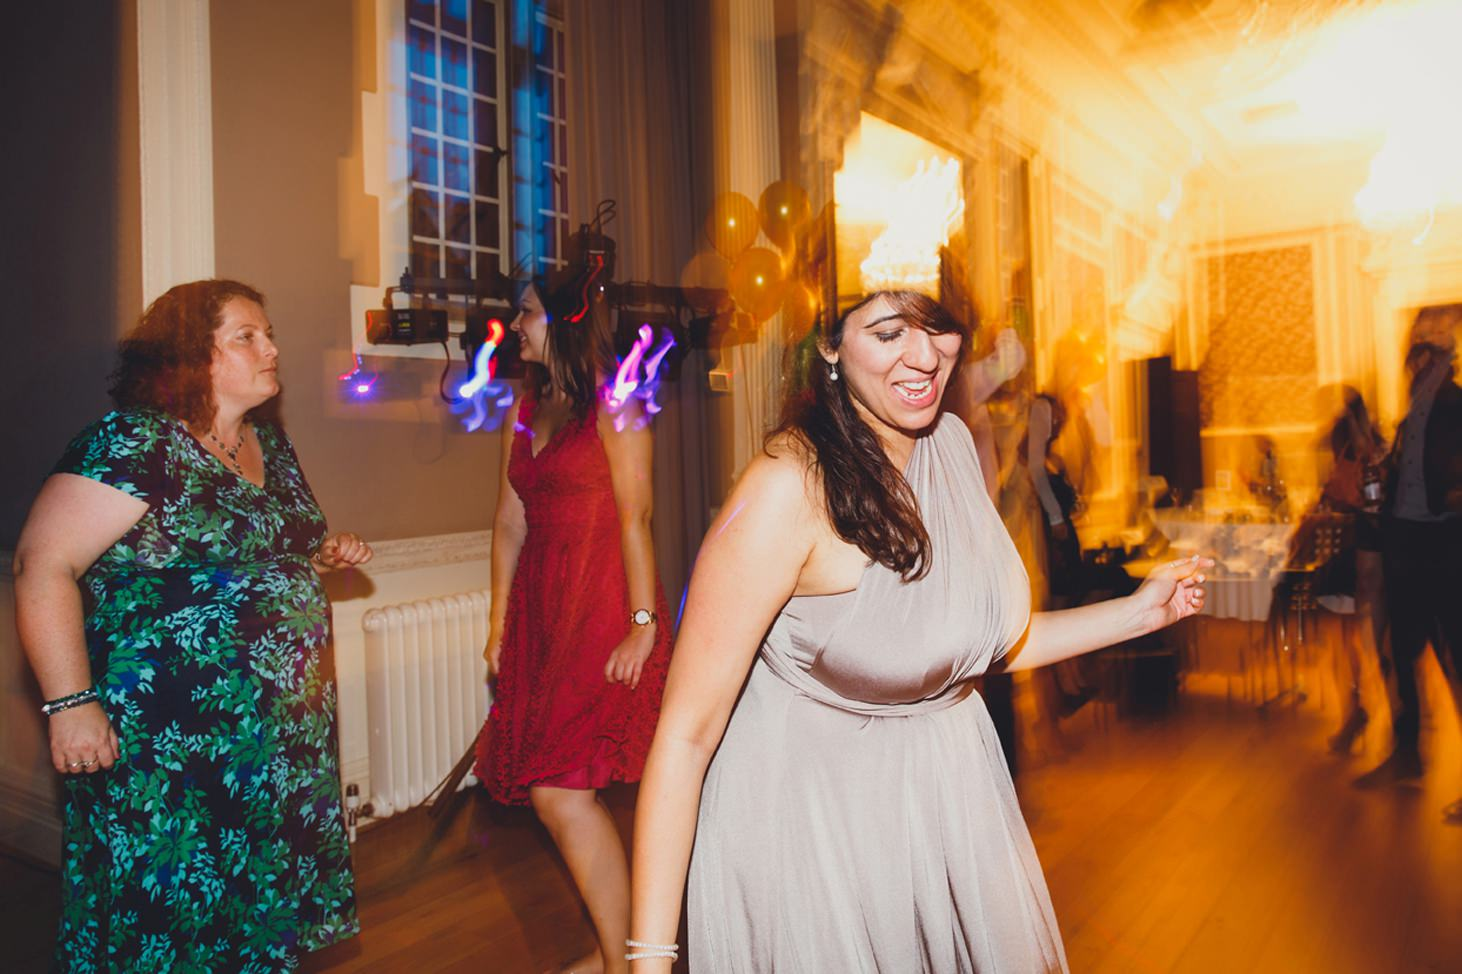 Wycombe Abbey wedding photography bridesmaid dancing